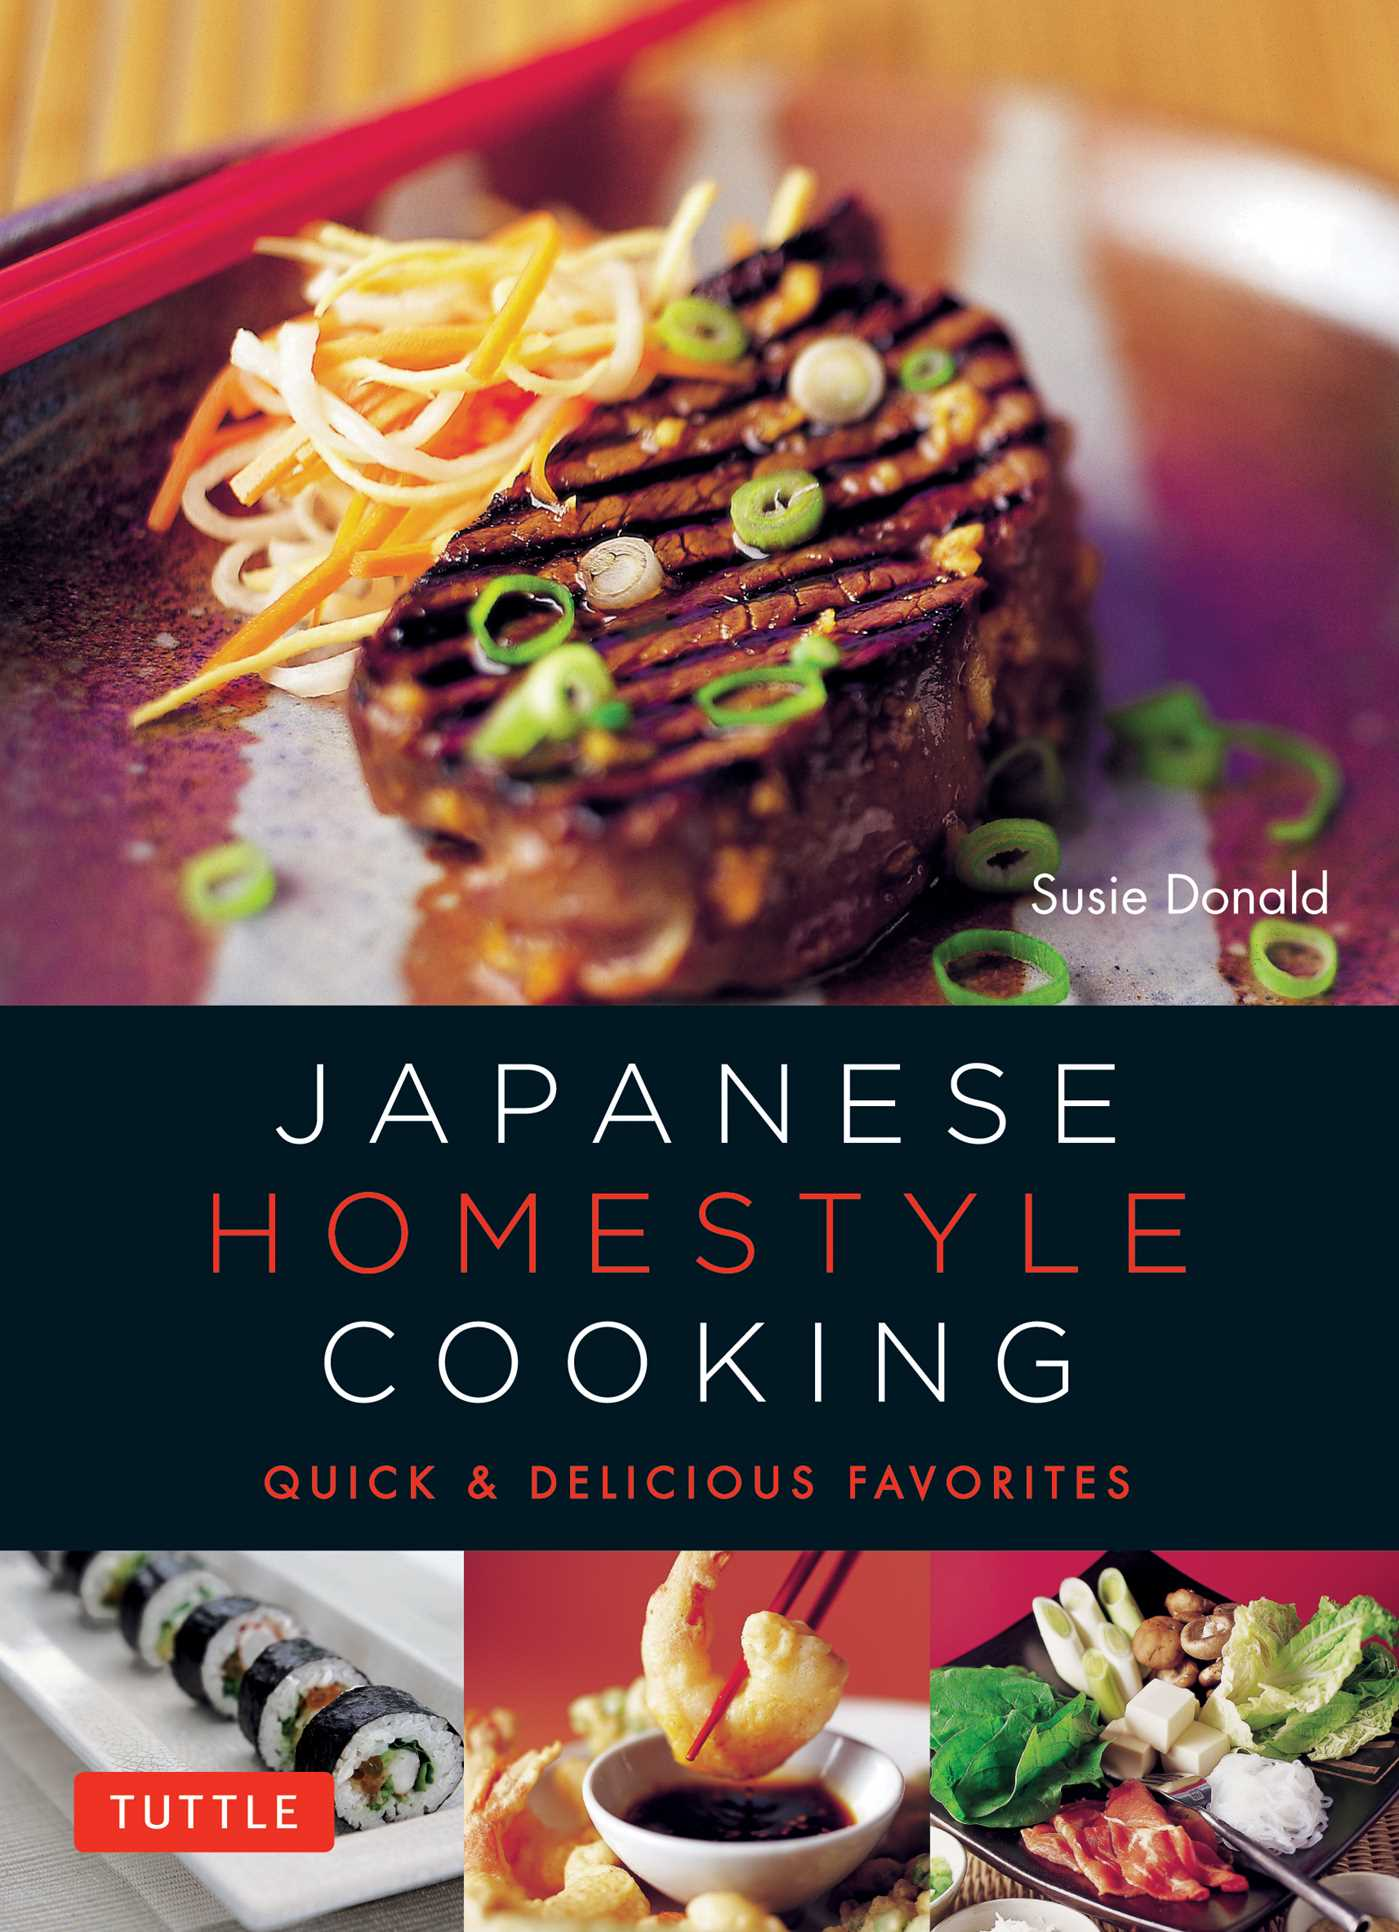 Japanese homestyle cooking 9784805313305 hr